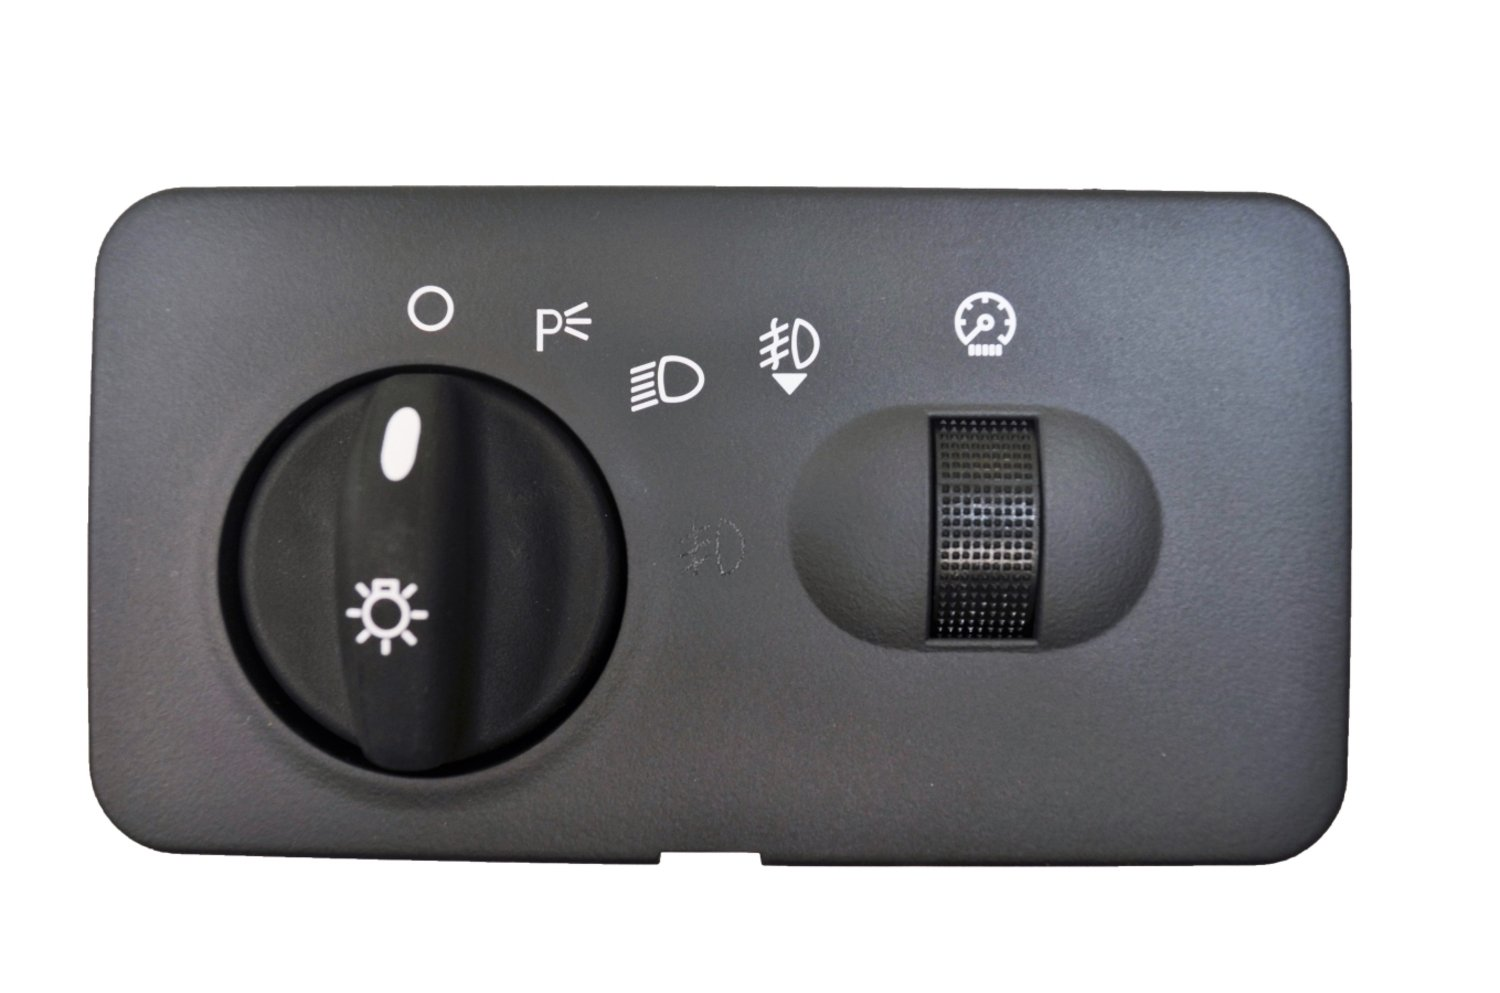 PT Auto Warehouse HLS-2865A - Headlight Switch - with Fog Lights, Without Auto Headlight